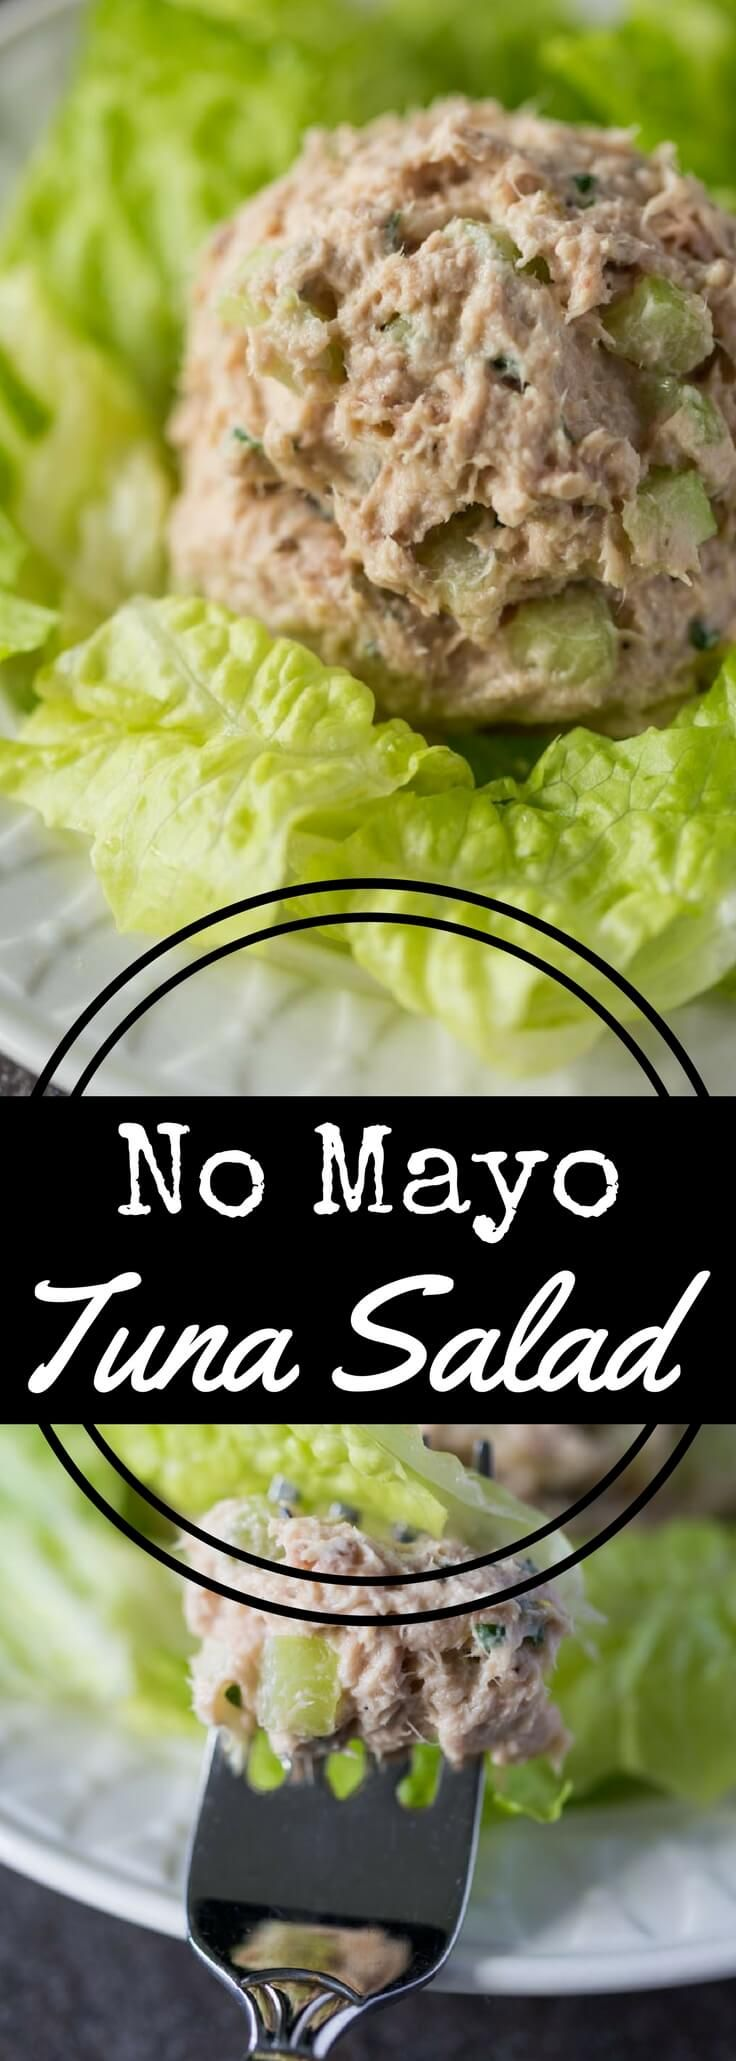 #ad Yes, tuna salad without mayonnaise can be delicious! Try this No Mayo Tuna Salad recipe with fresh parsley, lemon zest, celery, and Greek yogurt. Fresh, light, flavorful, and perfectly suited for topping sandwiches or green salads. via @recipeforperfec @bellaportofino #BellaPortofino #IC